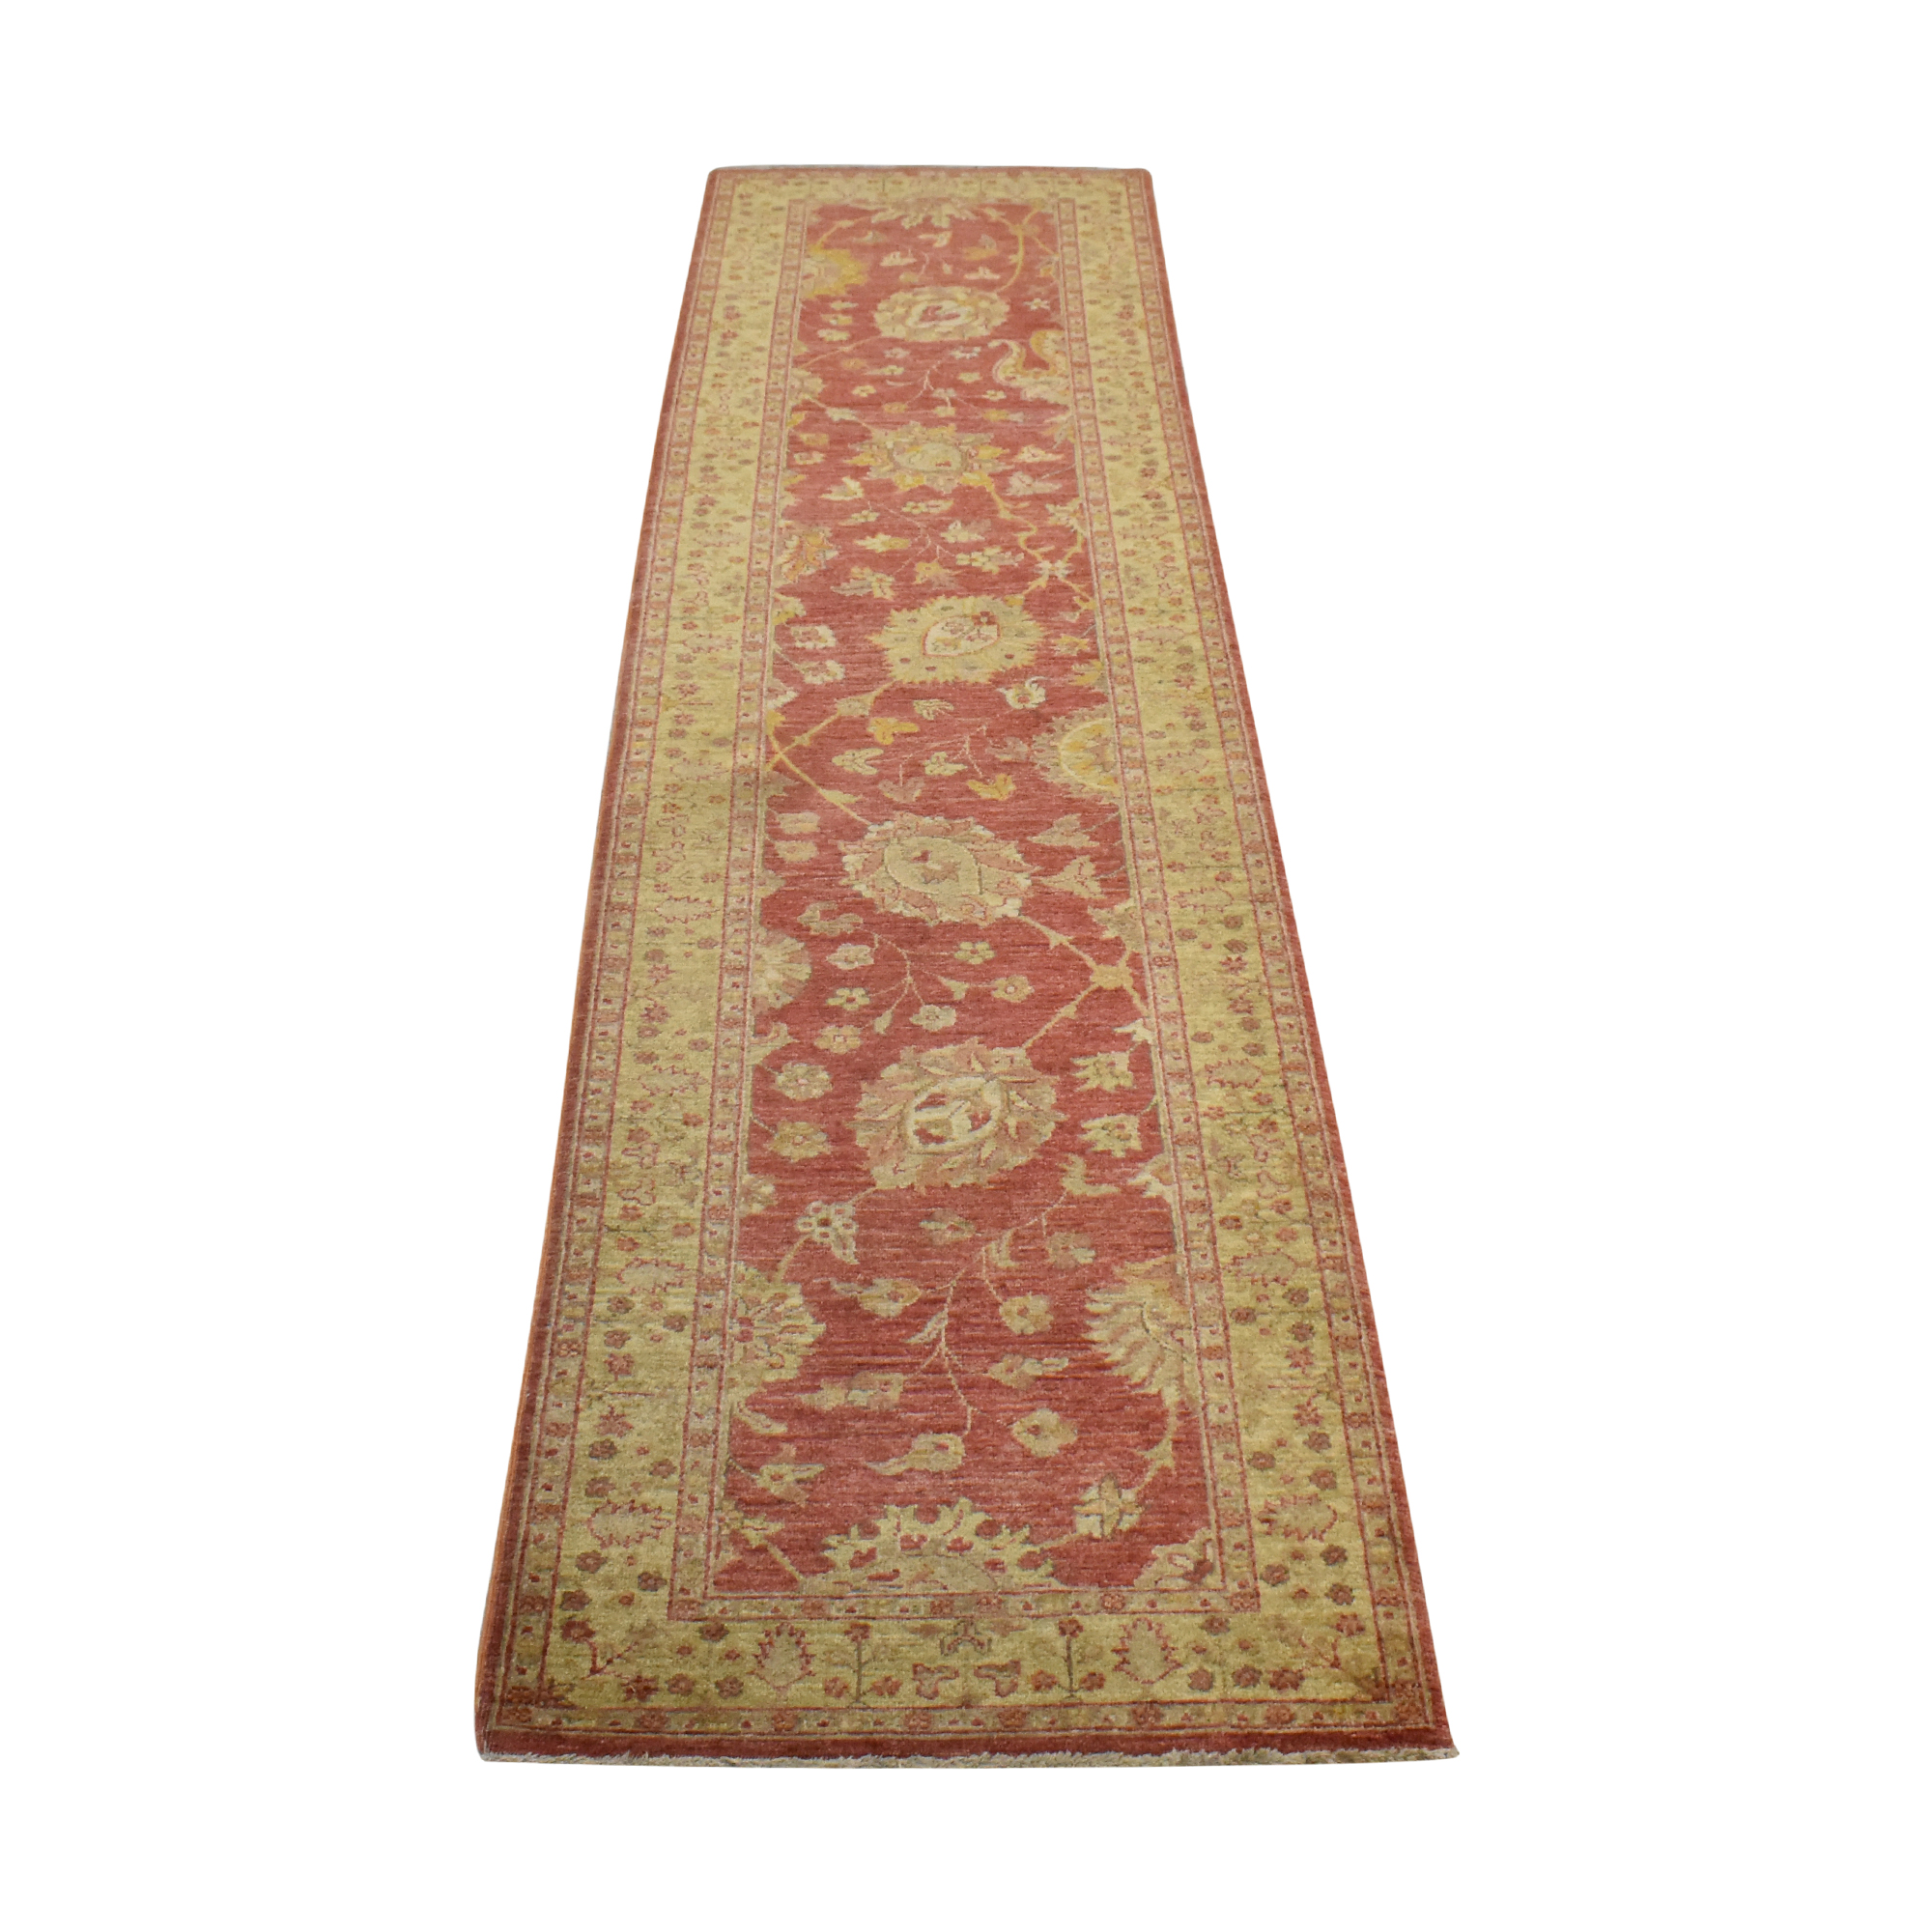 shop ABC Carpet & Home ABC Carpet & Home Persian Runner online